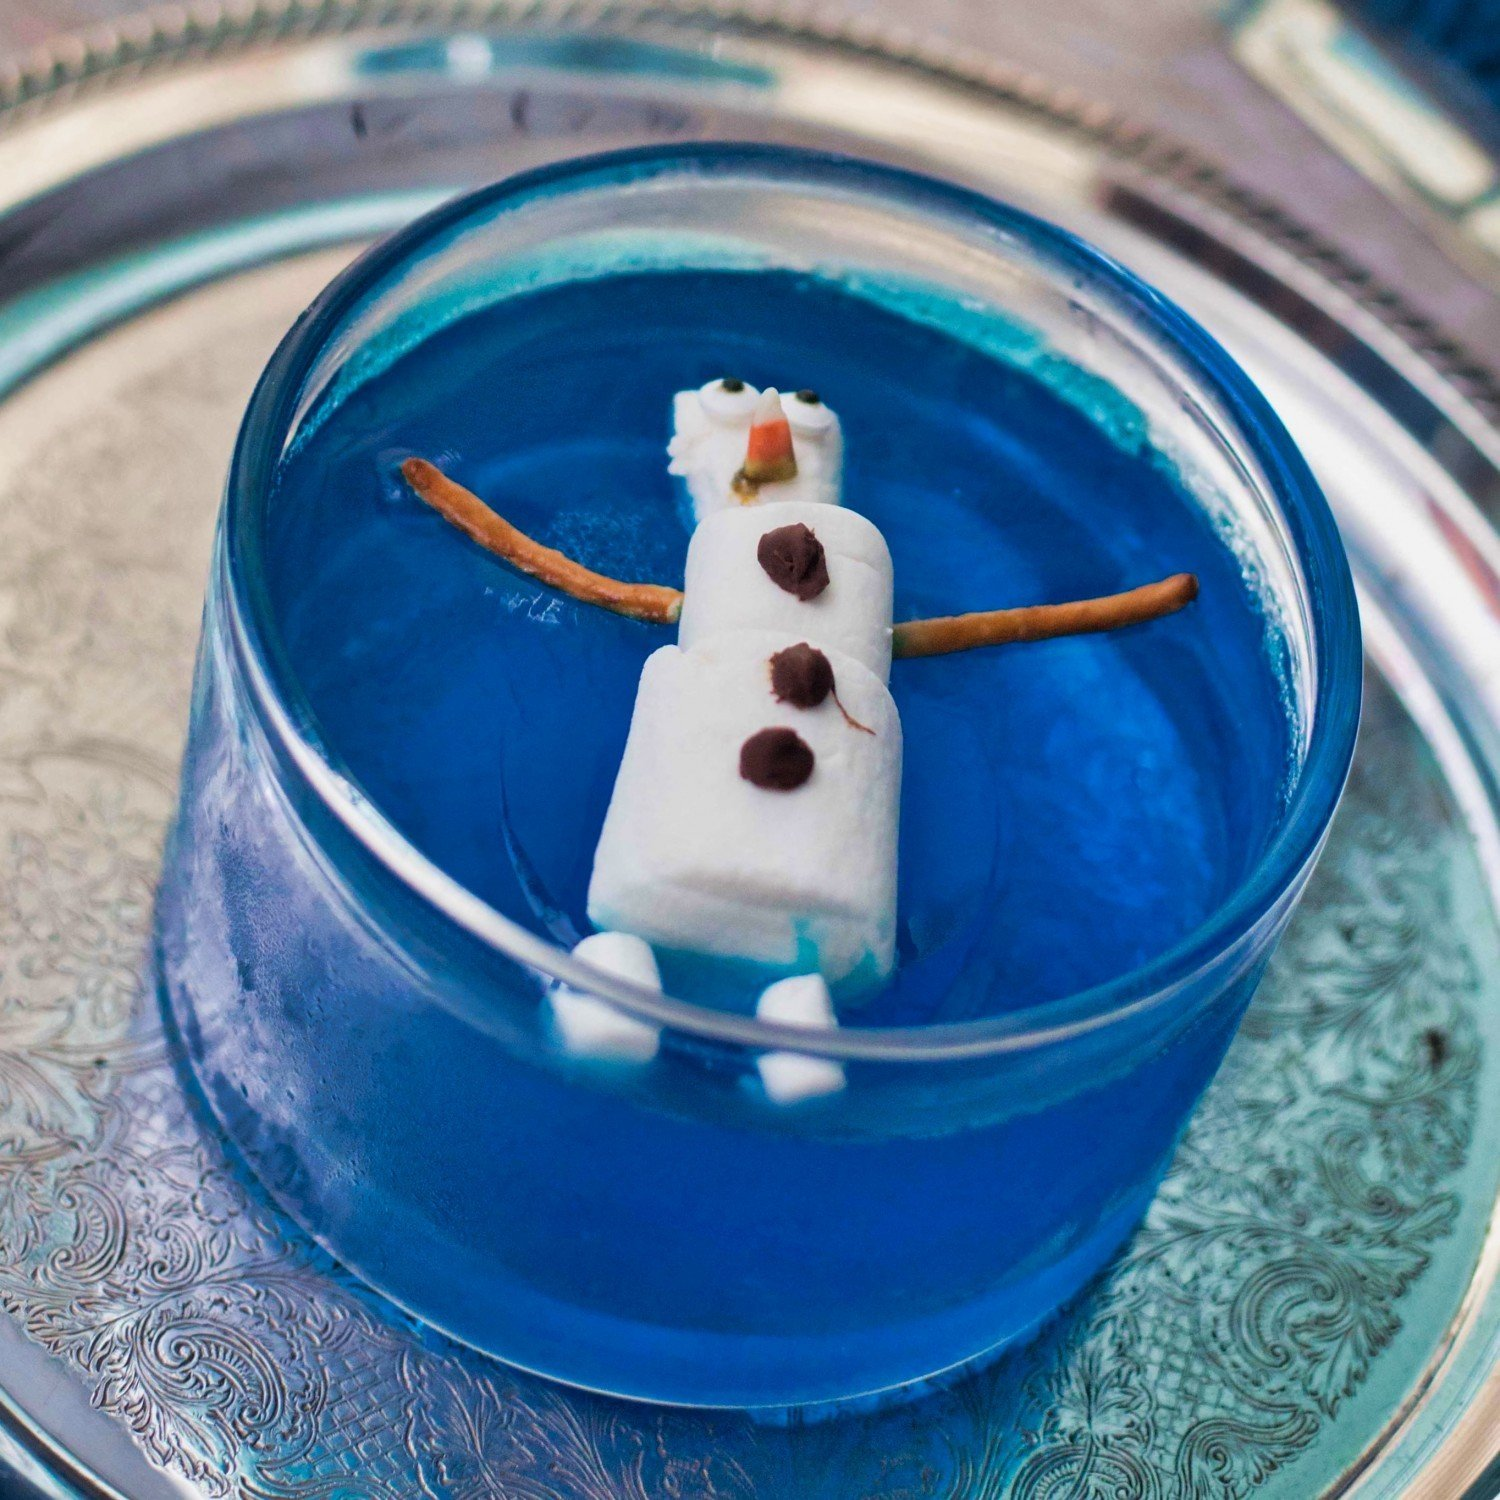 Jello bowl with Olaf made from marshmallows floating